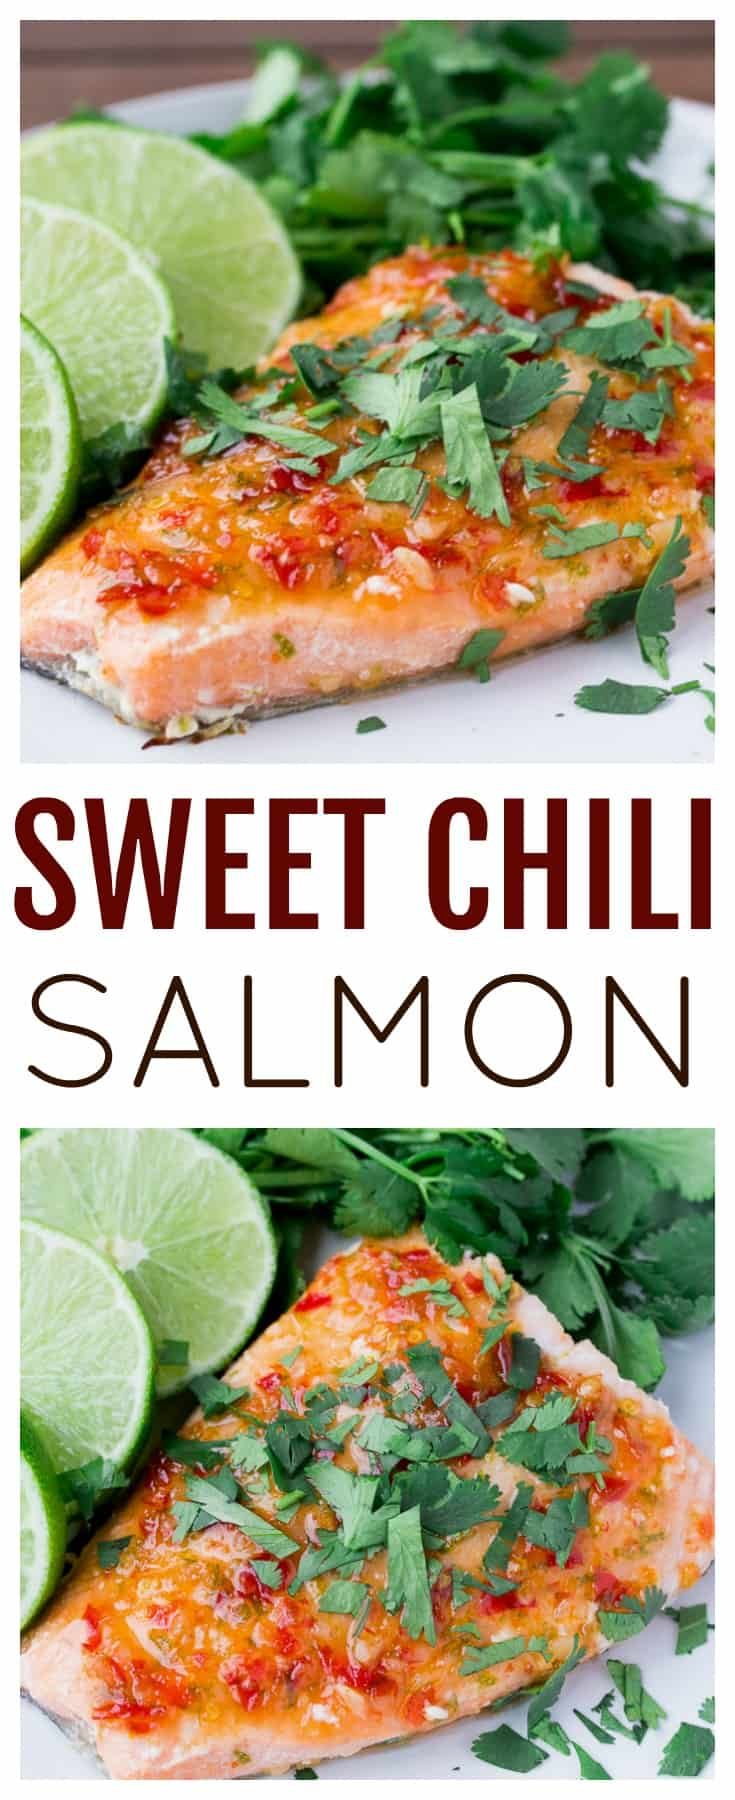 This Sweet Chili Salmon Recipe can be ready and on the table for a quick dinner in 15 minutes! It's naturally gluten free and perfect for those busy week nights! | main dish recipes |#salmon #salmonrecipe #sweetchilisalmon #dlbrecipes #glutenfree